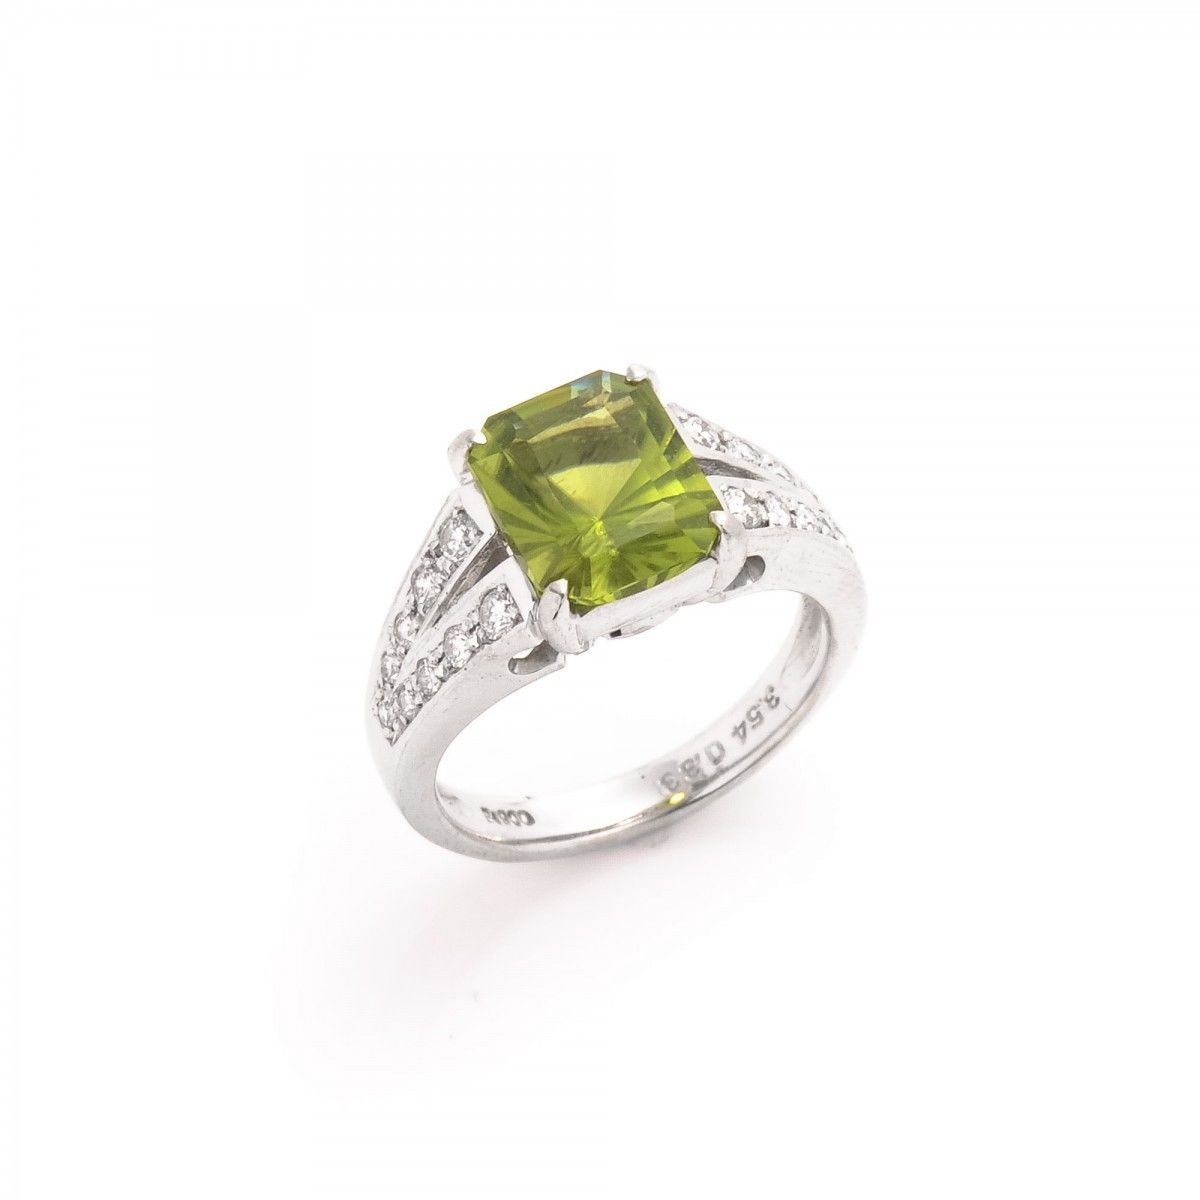 diamond once gold engagement rings with upon peridot ring gemstone diamonds products a